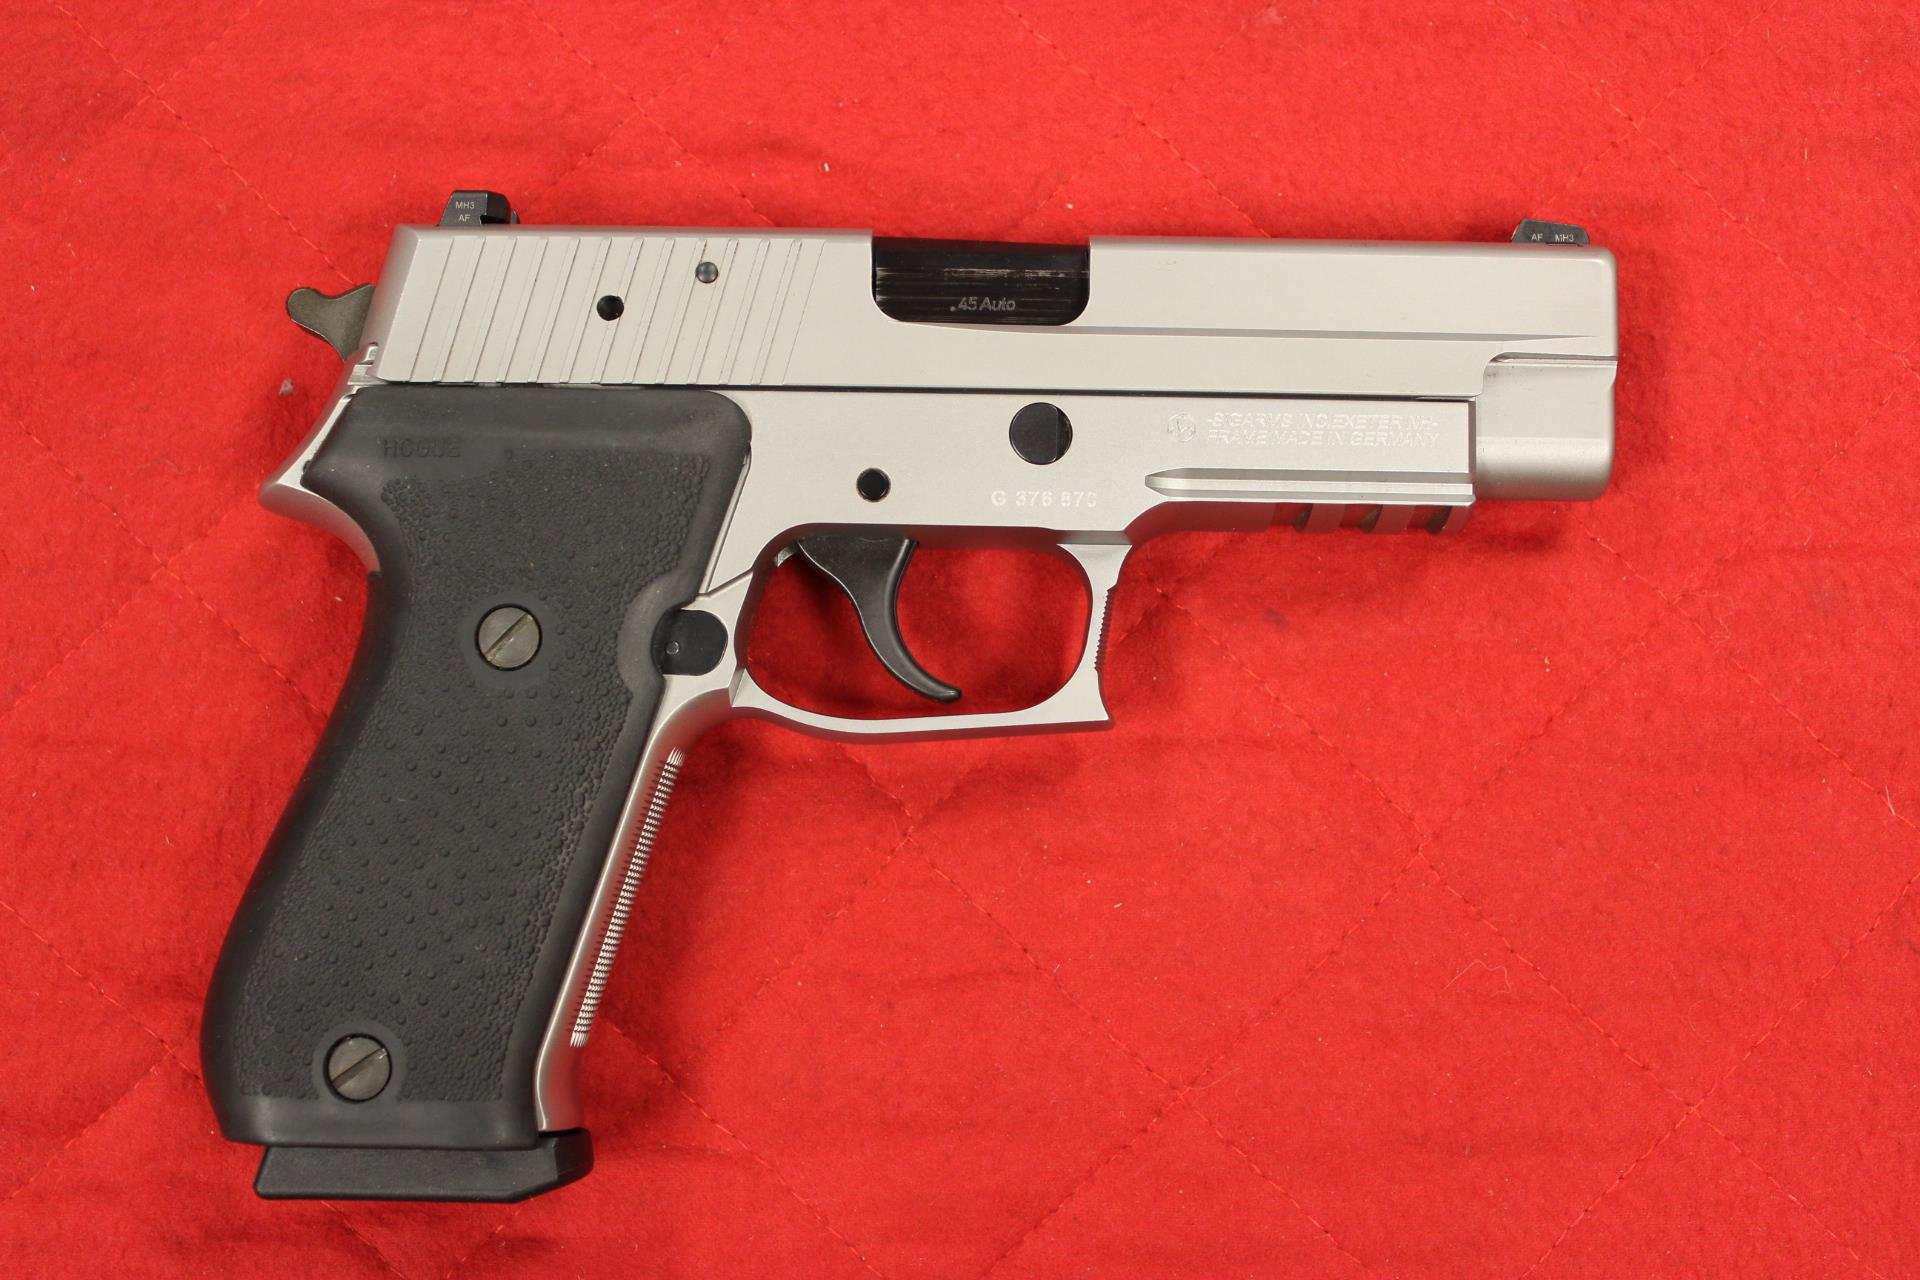 Sig P220 Stainless Steel With Nite Sites  Guns > Pistols > Sig - Sauer/Sigarms Pistols > P220